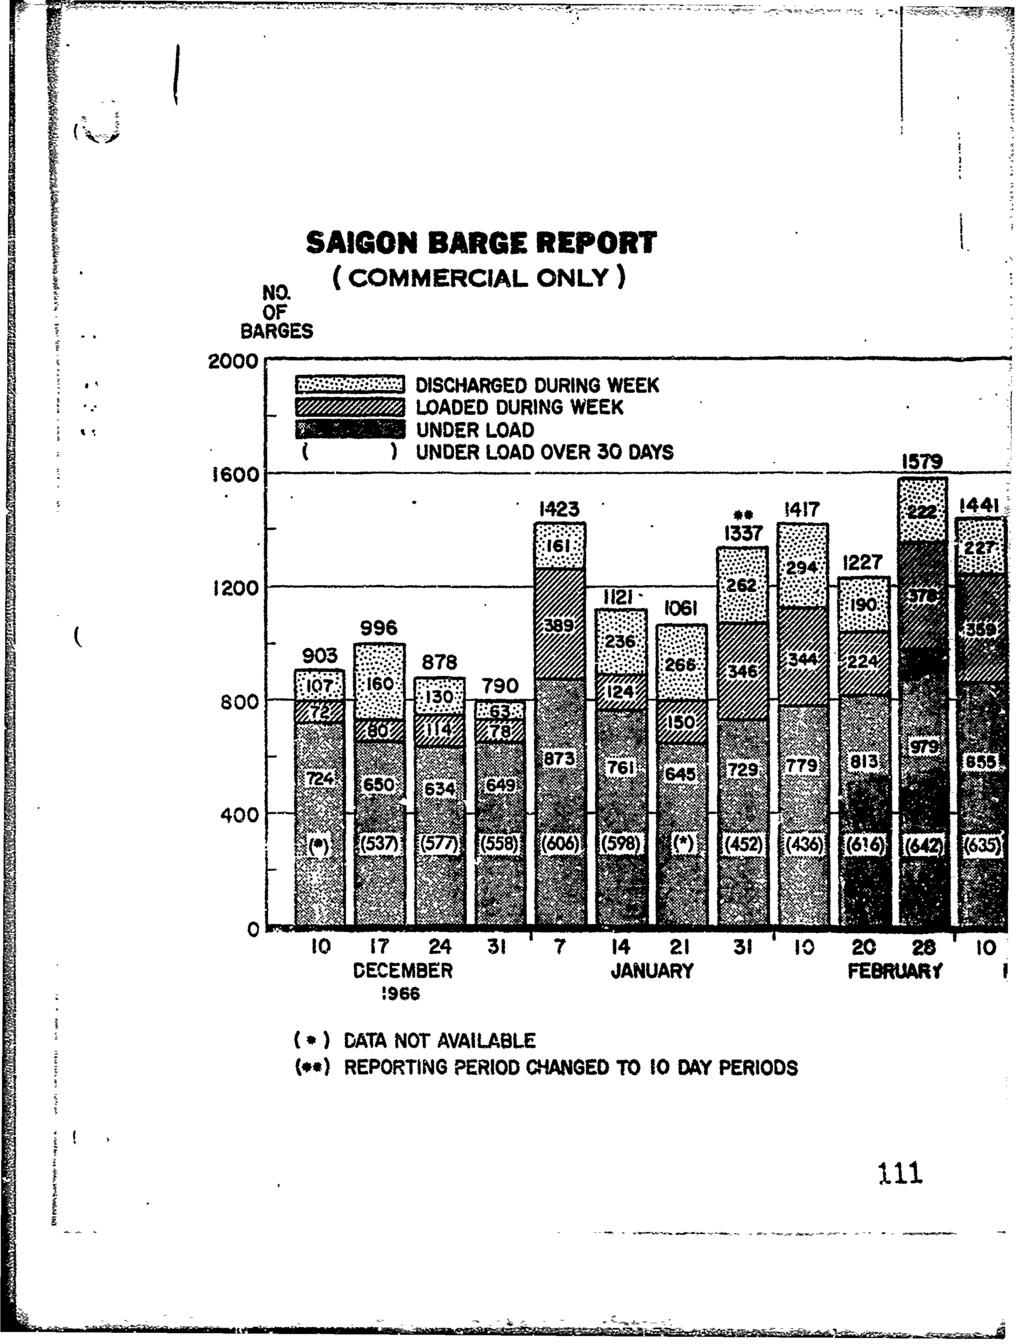 "SAIGON BARGE REPORT } N NOL (COMMERCIAL ONLY) OF BARGES 2000 : """" _ ""DISCHARGED LOADED DURING DURING WEEK WEEK UNDER LOAD UNDER LOAD OVER 30 DAYS 1579 S~1600 1423 ""."